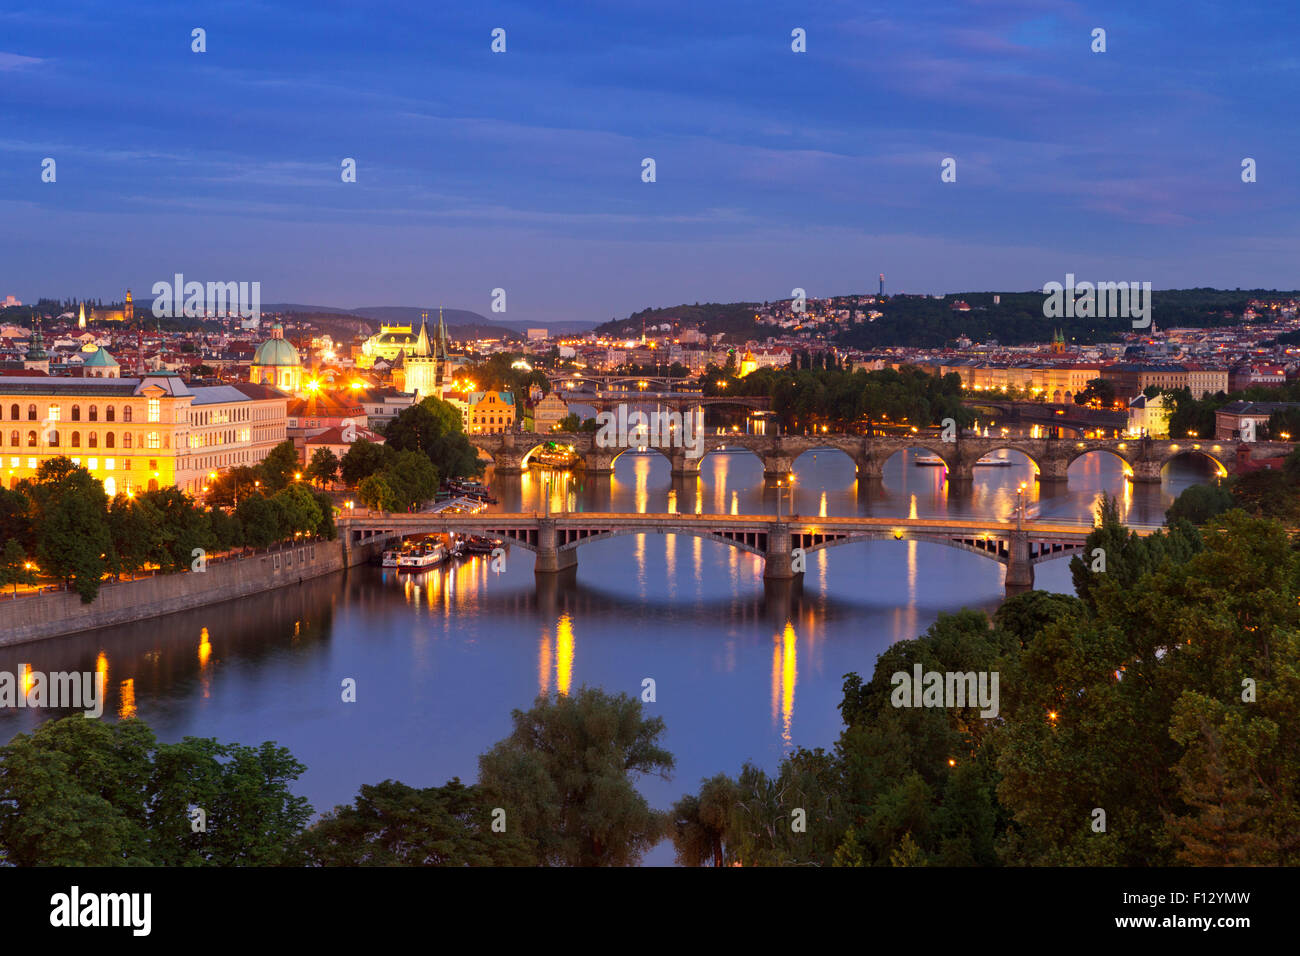 Bridges over the Vltava River in Prague, Czech Republic. Photographed from above at night. Stock Photo